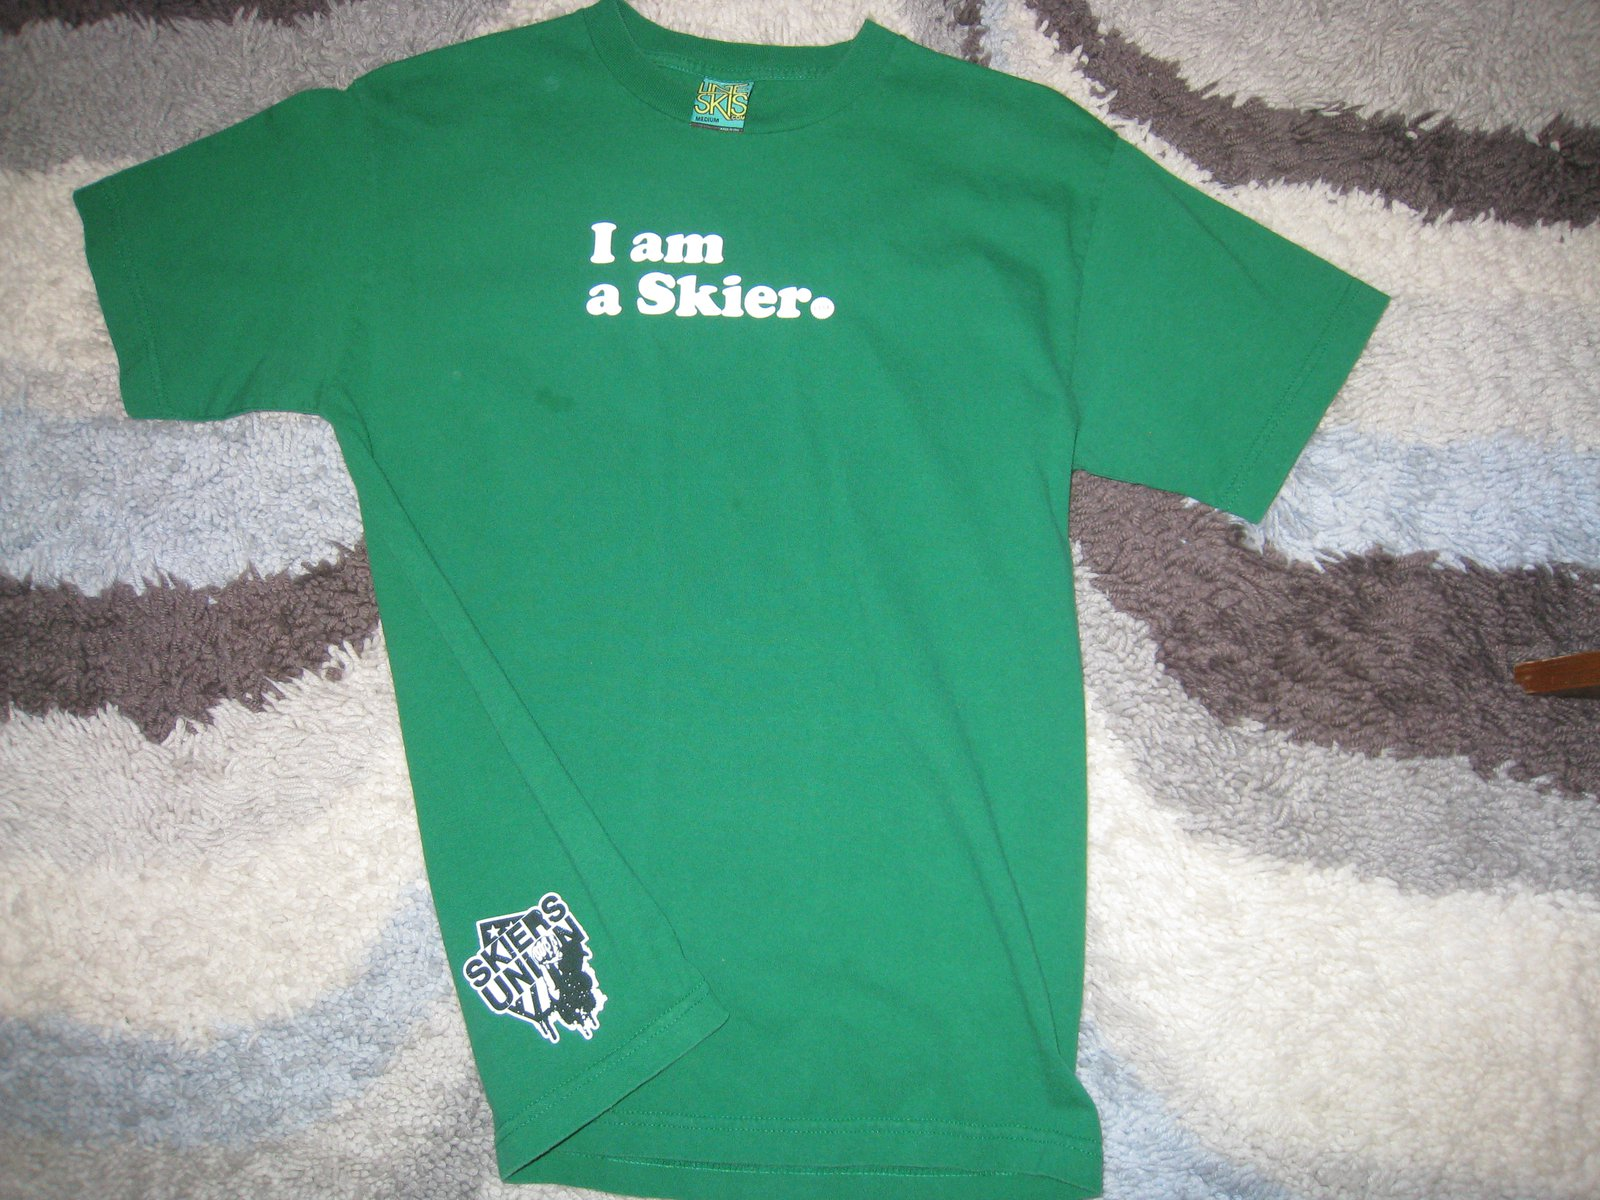 Line I am a Skier t-shirt for sale